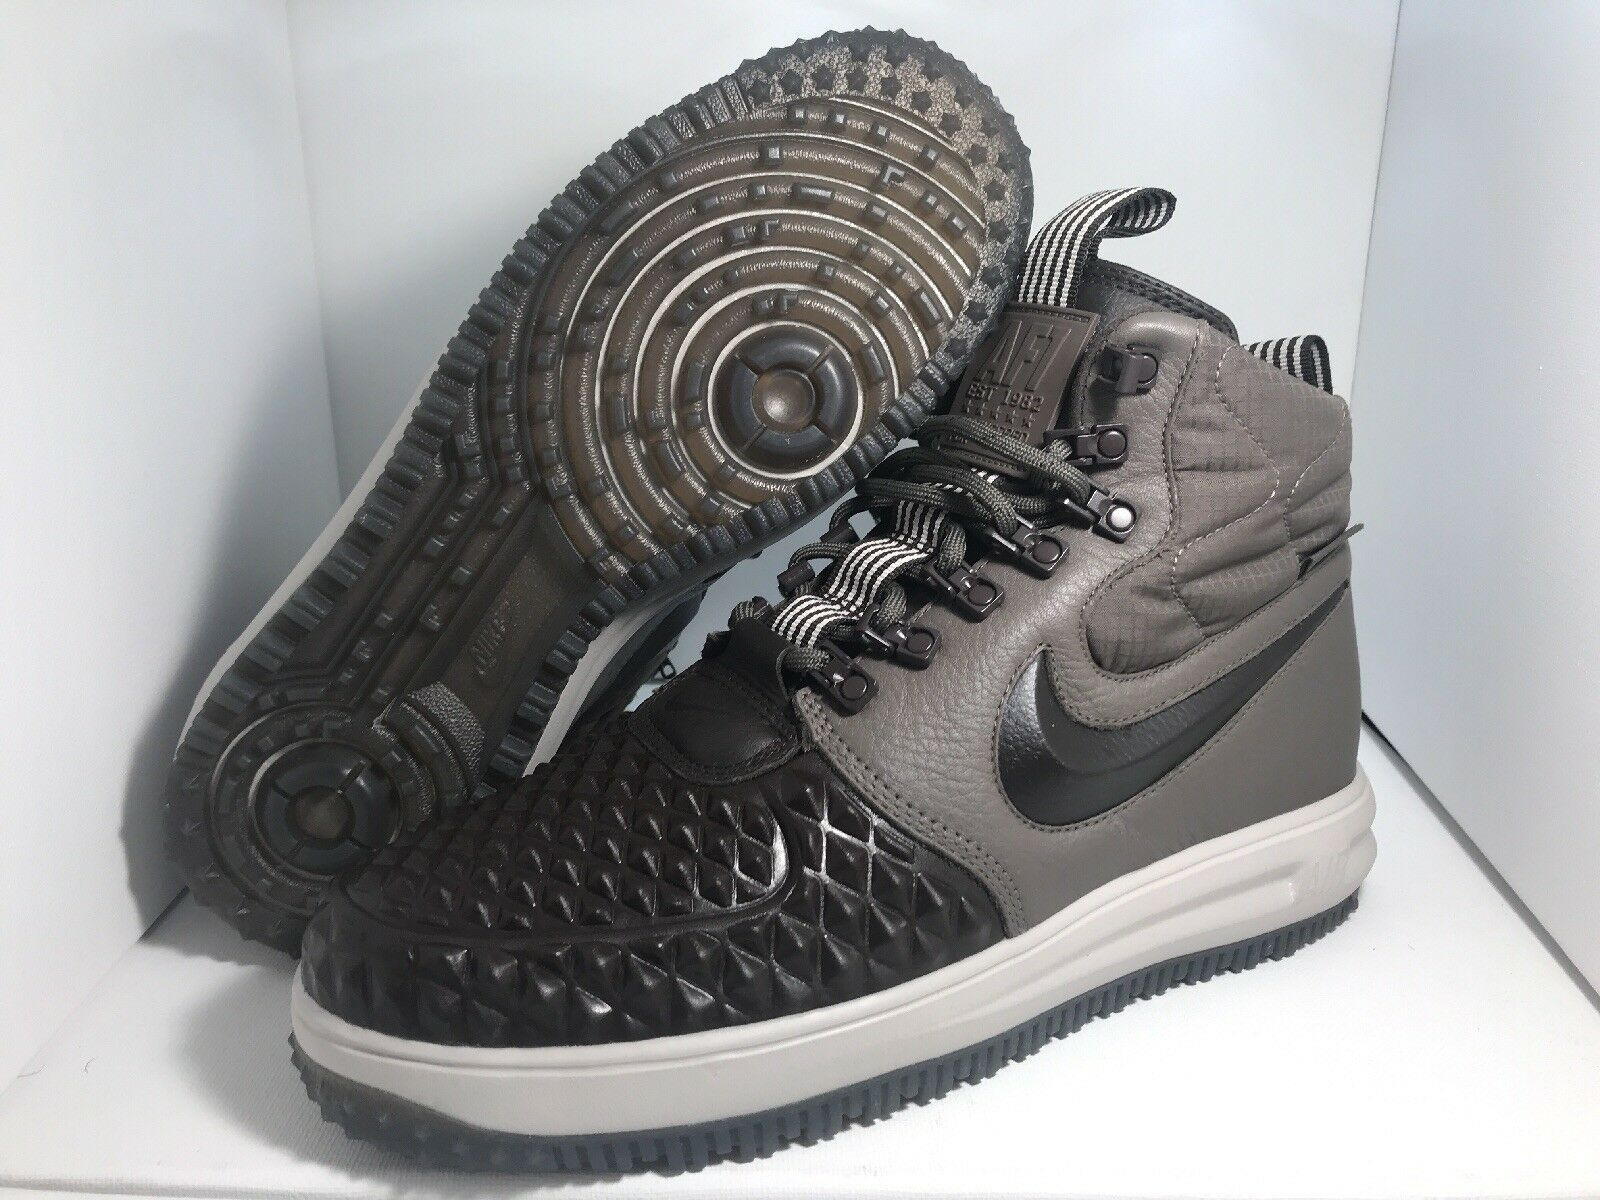 New NIKE LUNAR FORCE 1 DUCKBOOT '17 Price reduction RIDGEROCK BROWN MEN  Sz 9 New shoes for men and women, limited time discount